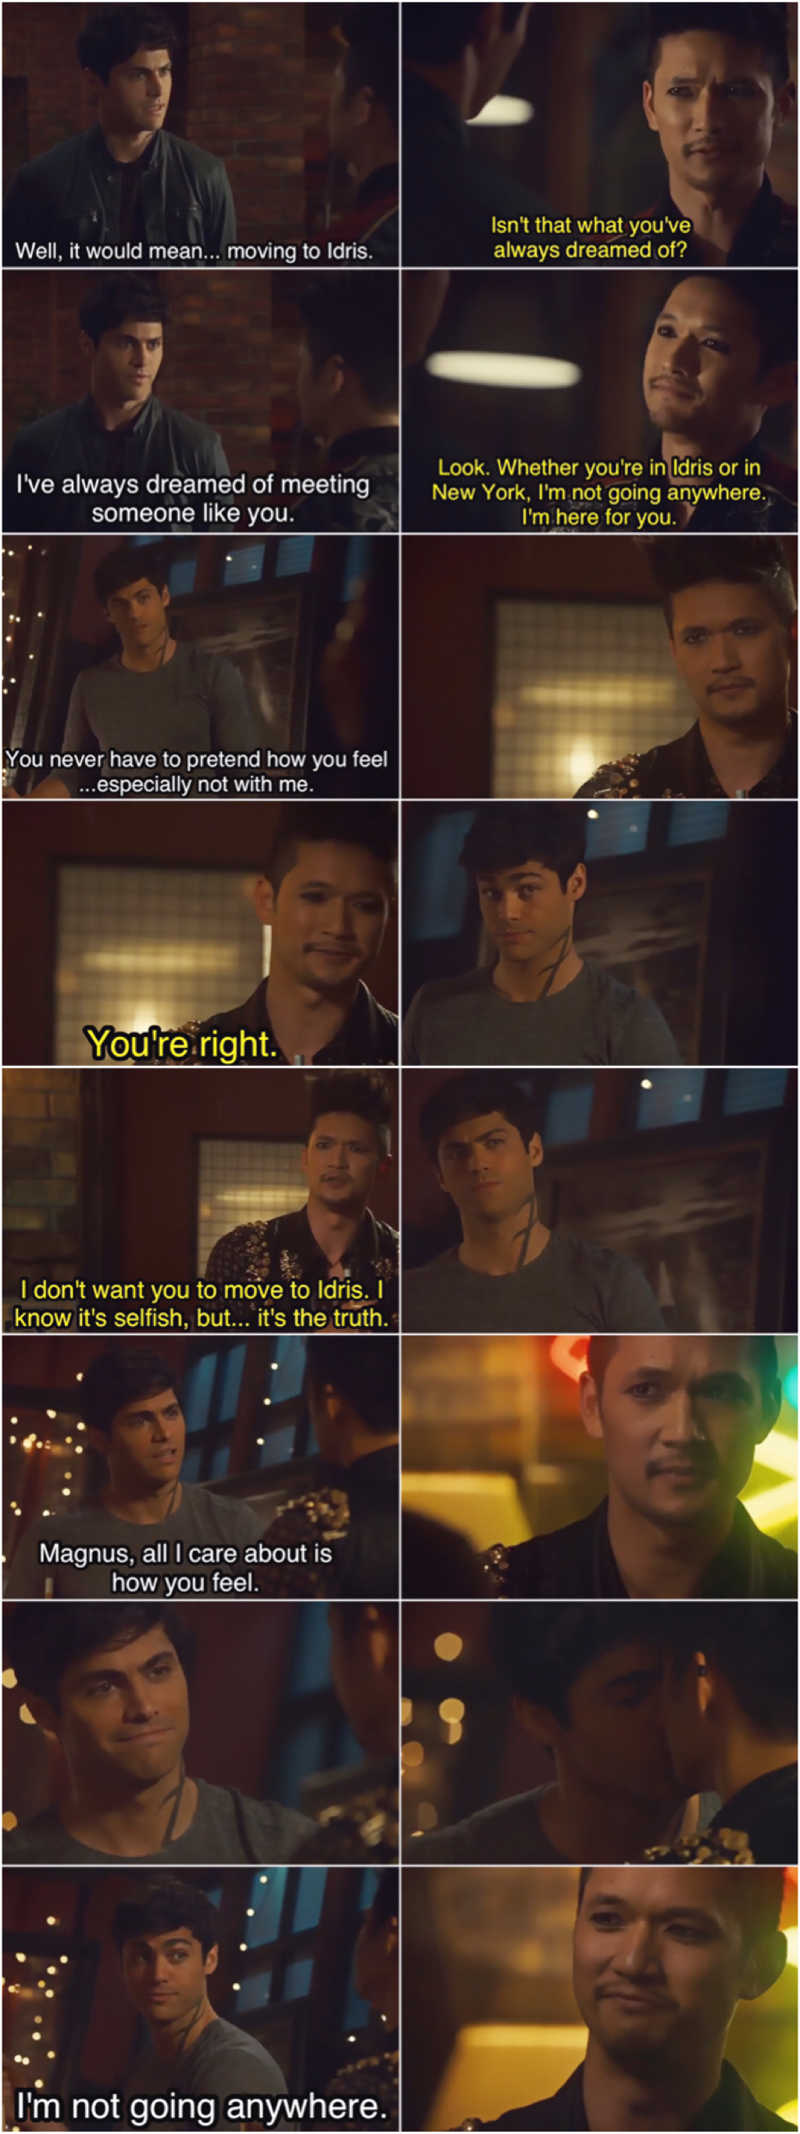 Malec is back and all is right in the world 😍🤗💙